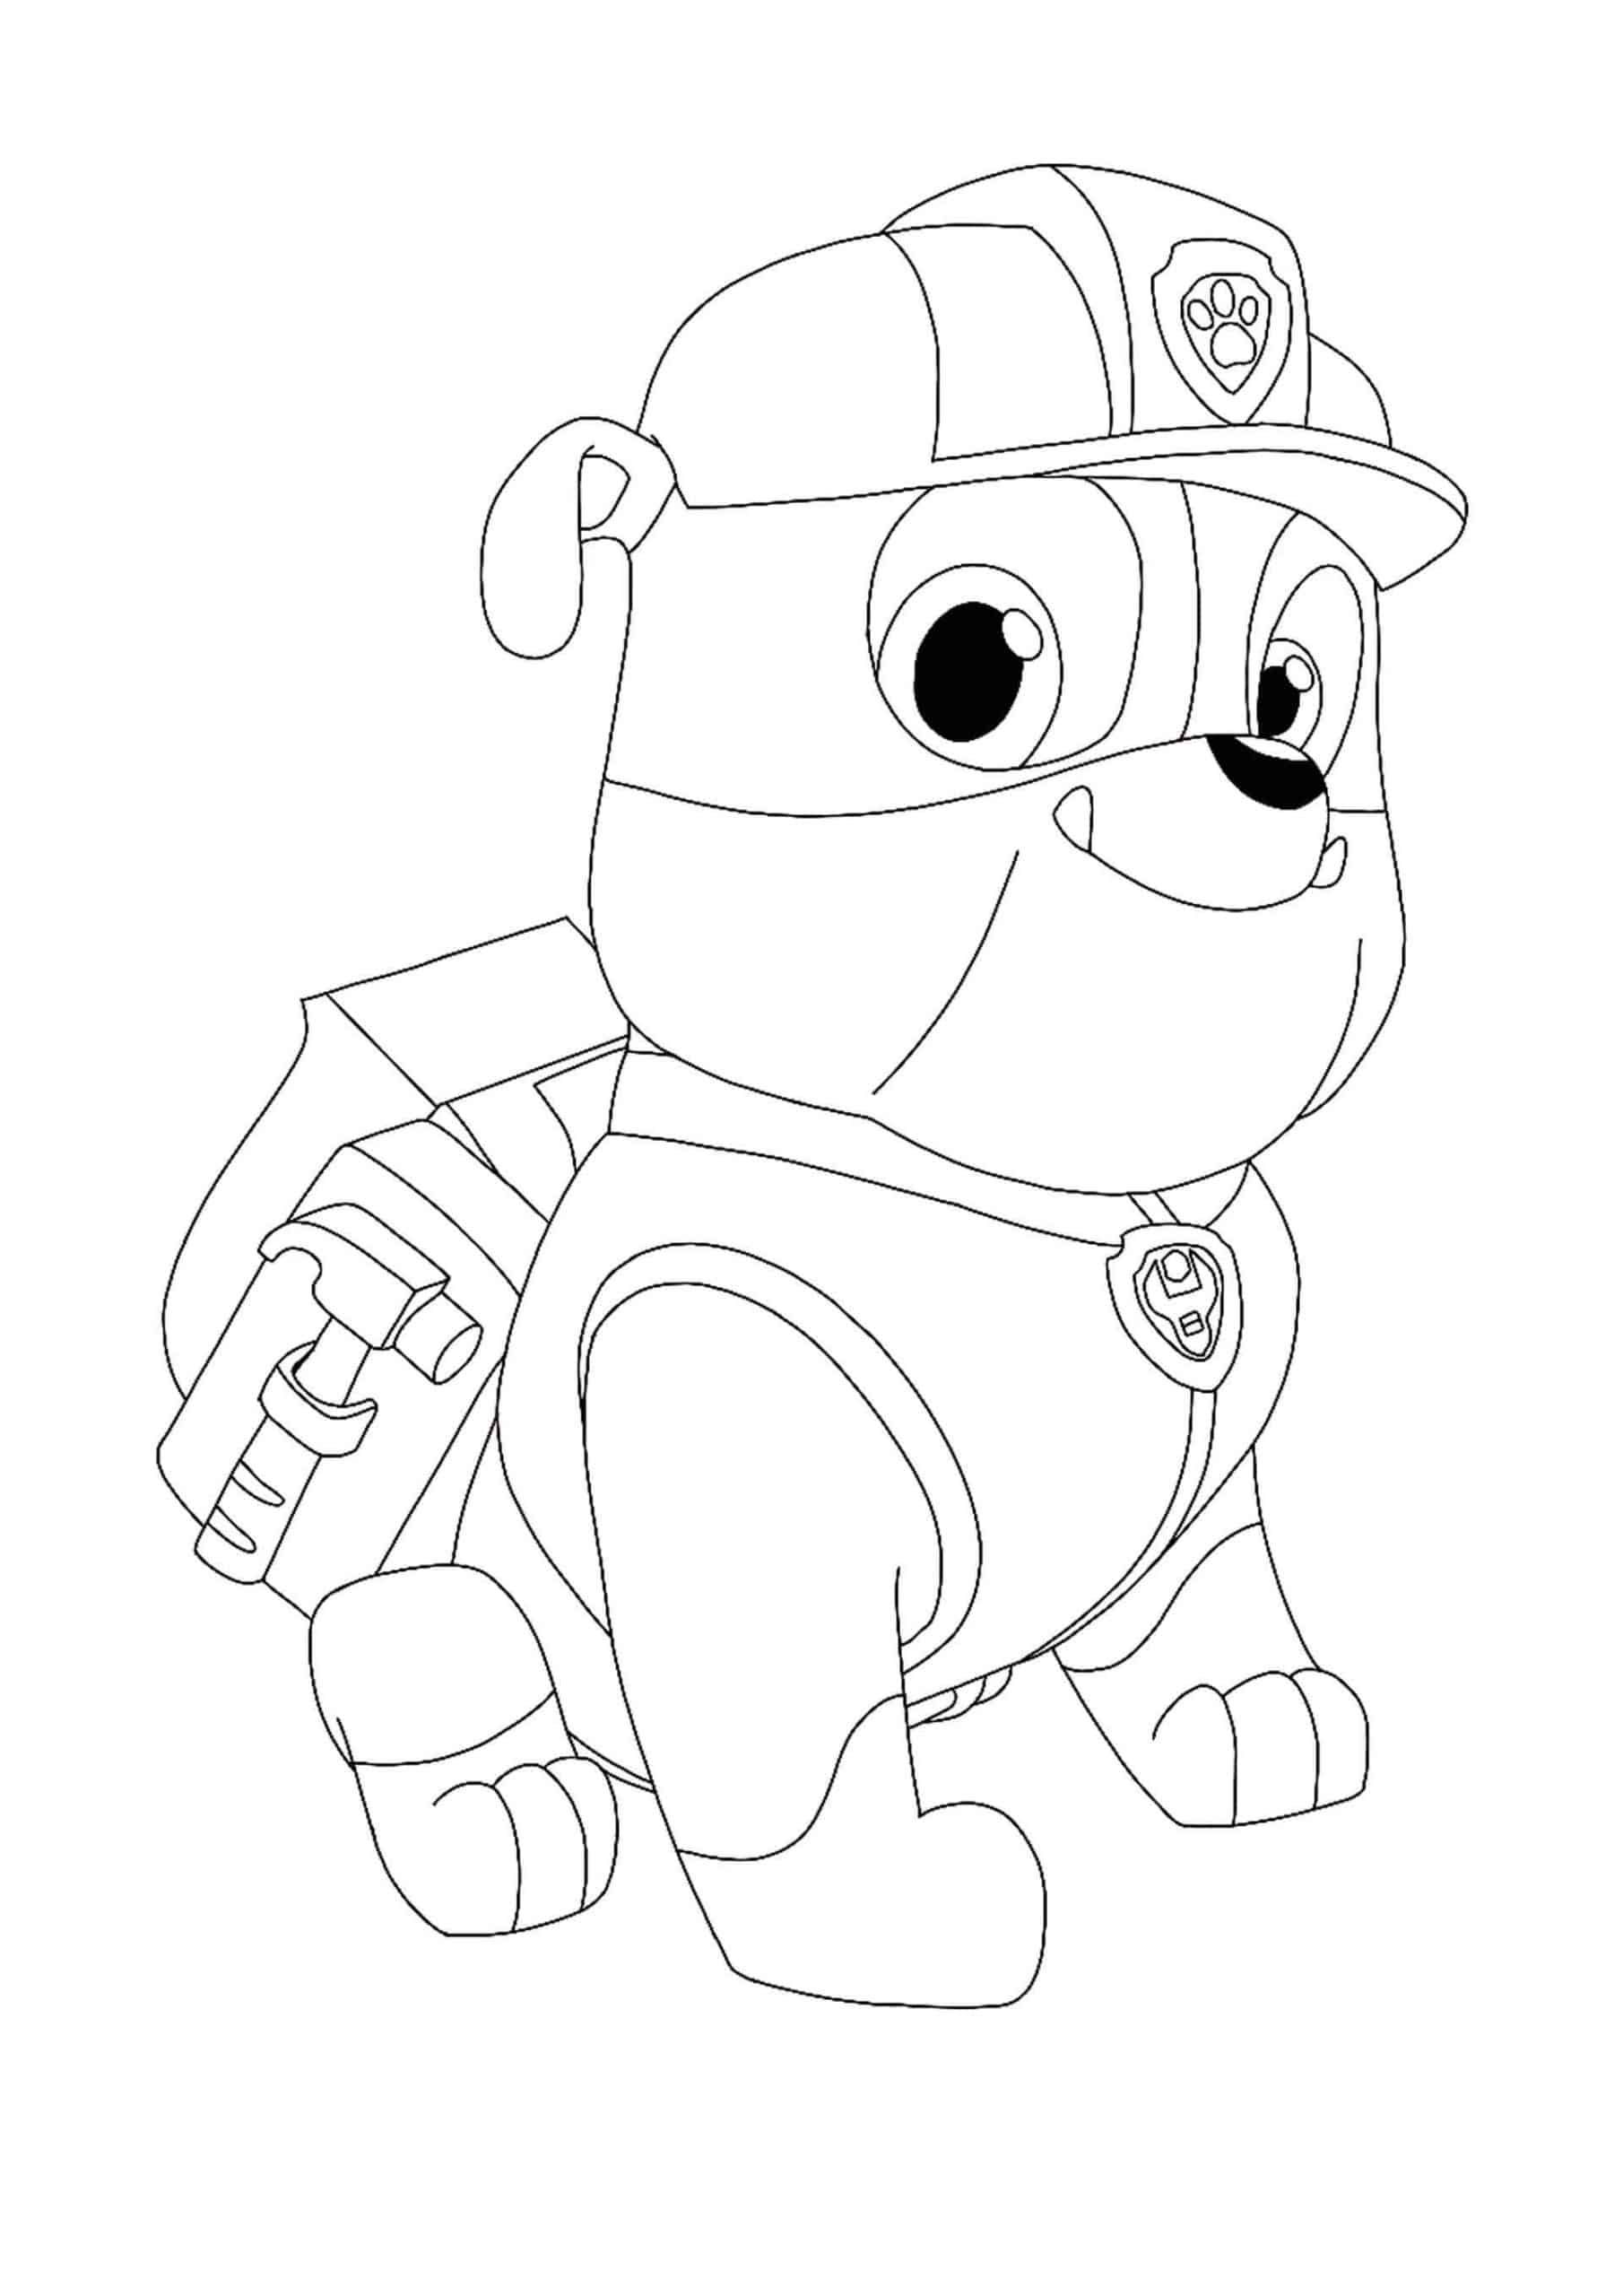 paw patrol coloring characters paw patrol rubble coloring page in 2020 paw patrol patrol characters coloring paw